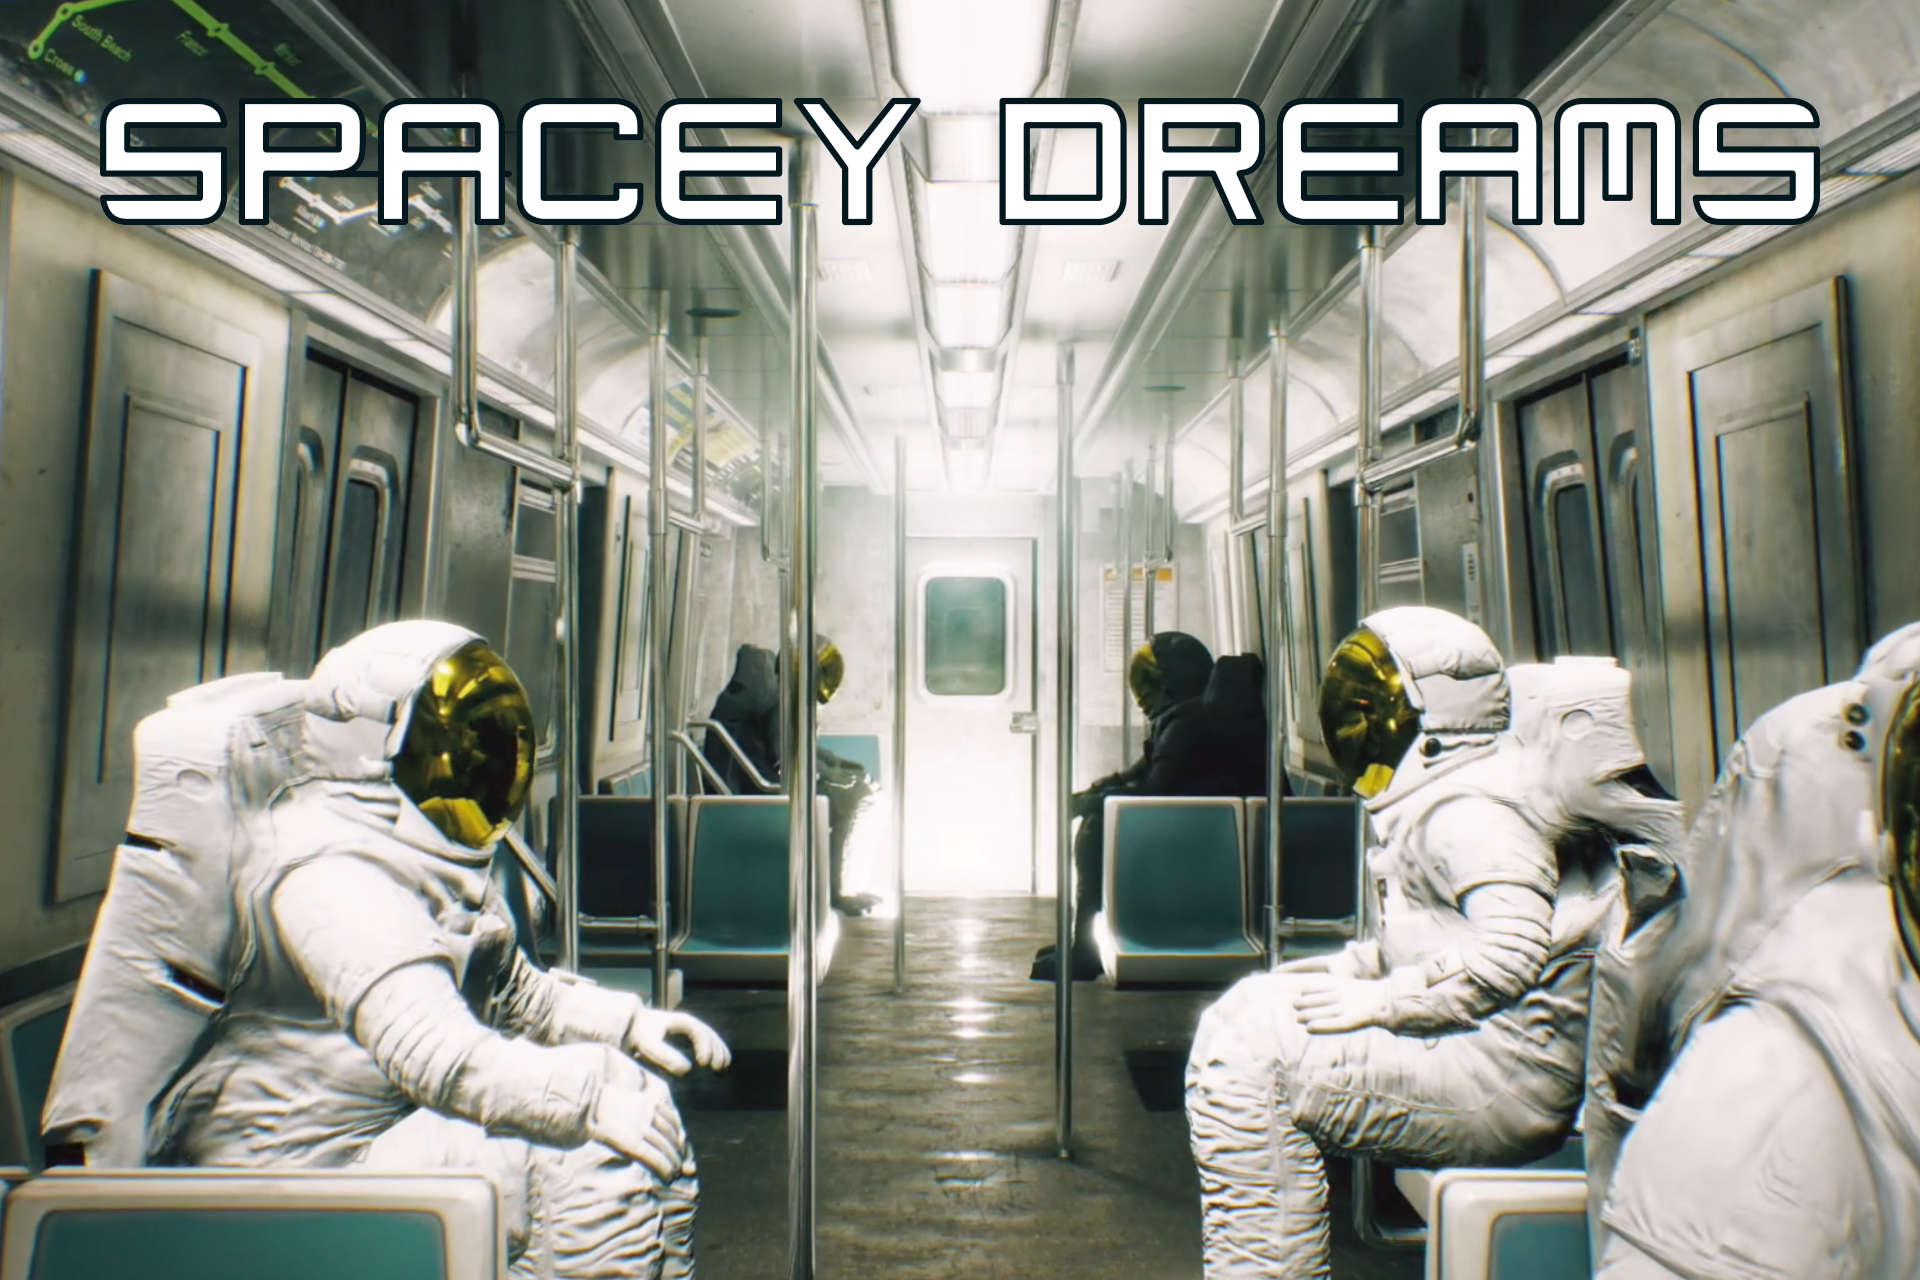 TRABS - Spacey dreams - Promo Image - 1920x1280